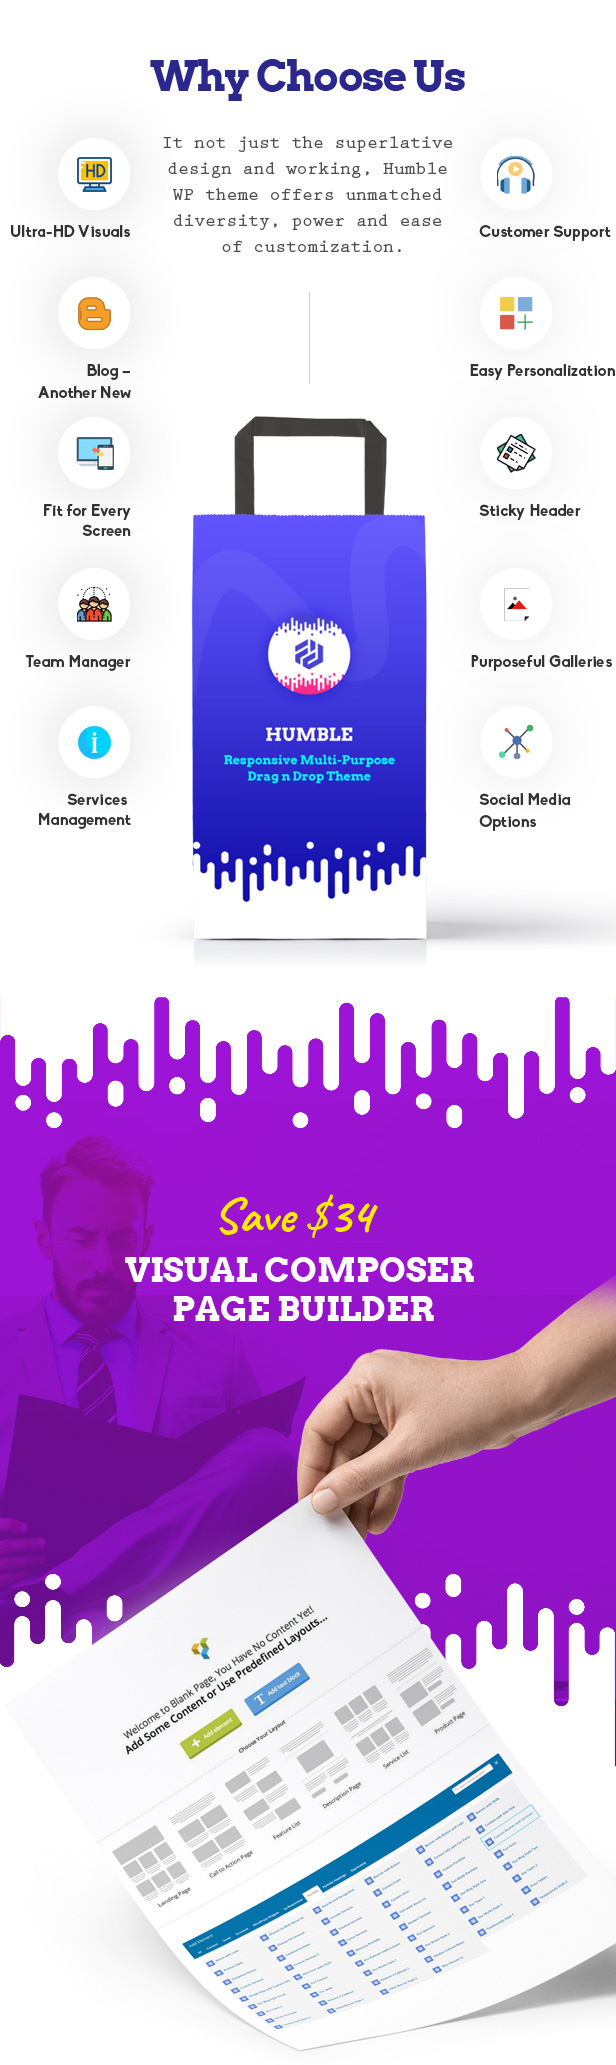 Humble. Responsive Multi-Purpose Drag n Drop Theme - 5